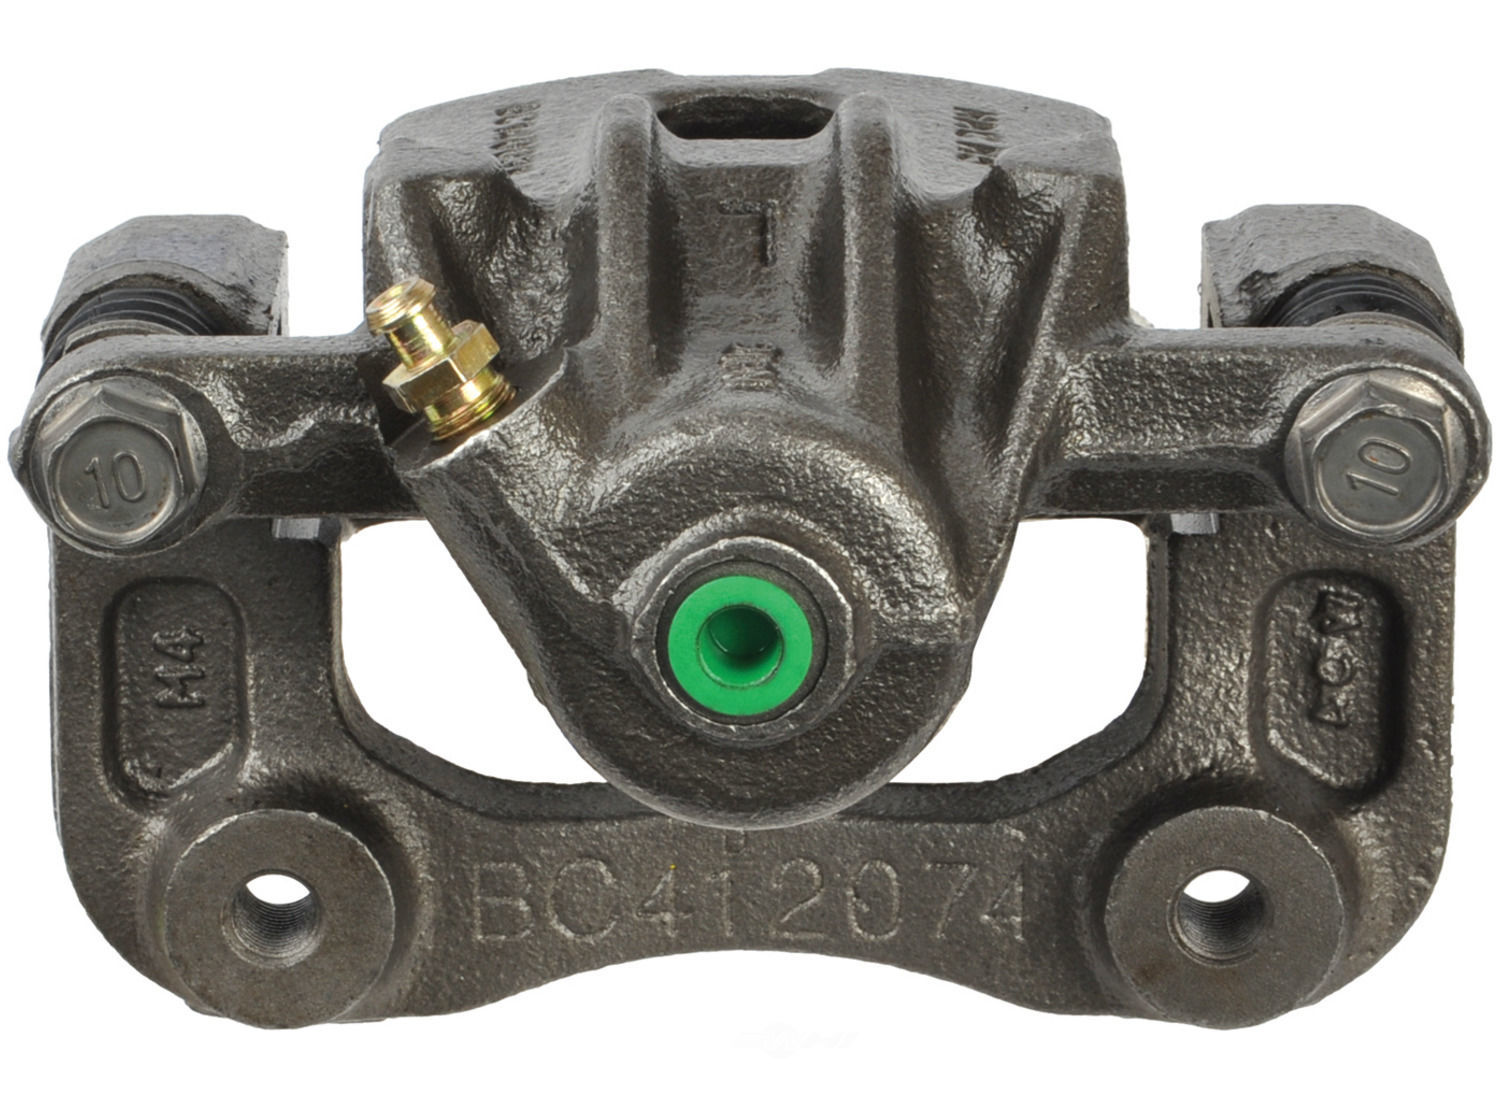 CARDONE/A-1 CARDONE - Remanufactured Friction Choice Caliper w/Bracket (Rear Left) - A1C 19-B2704A